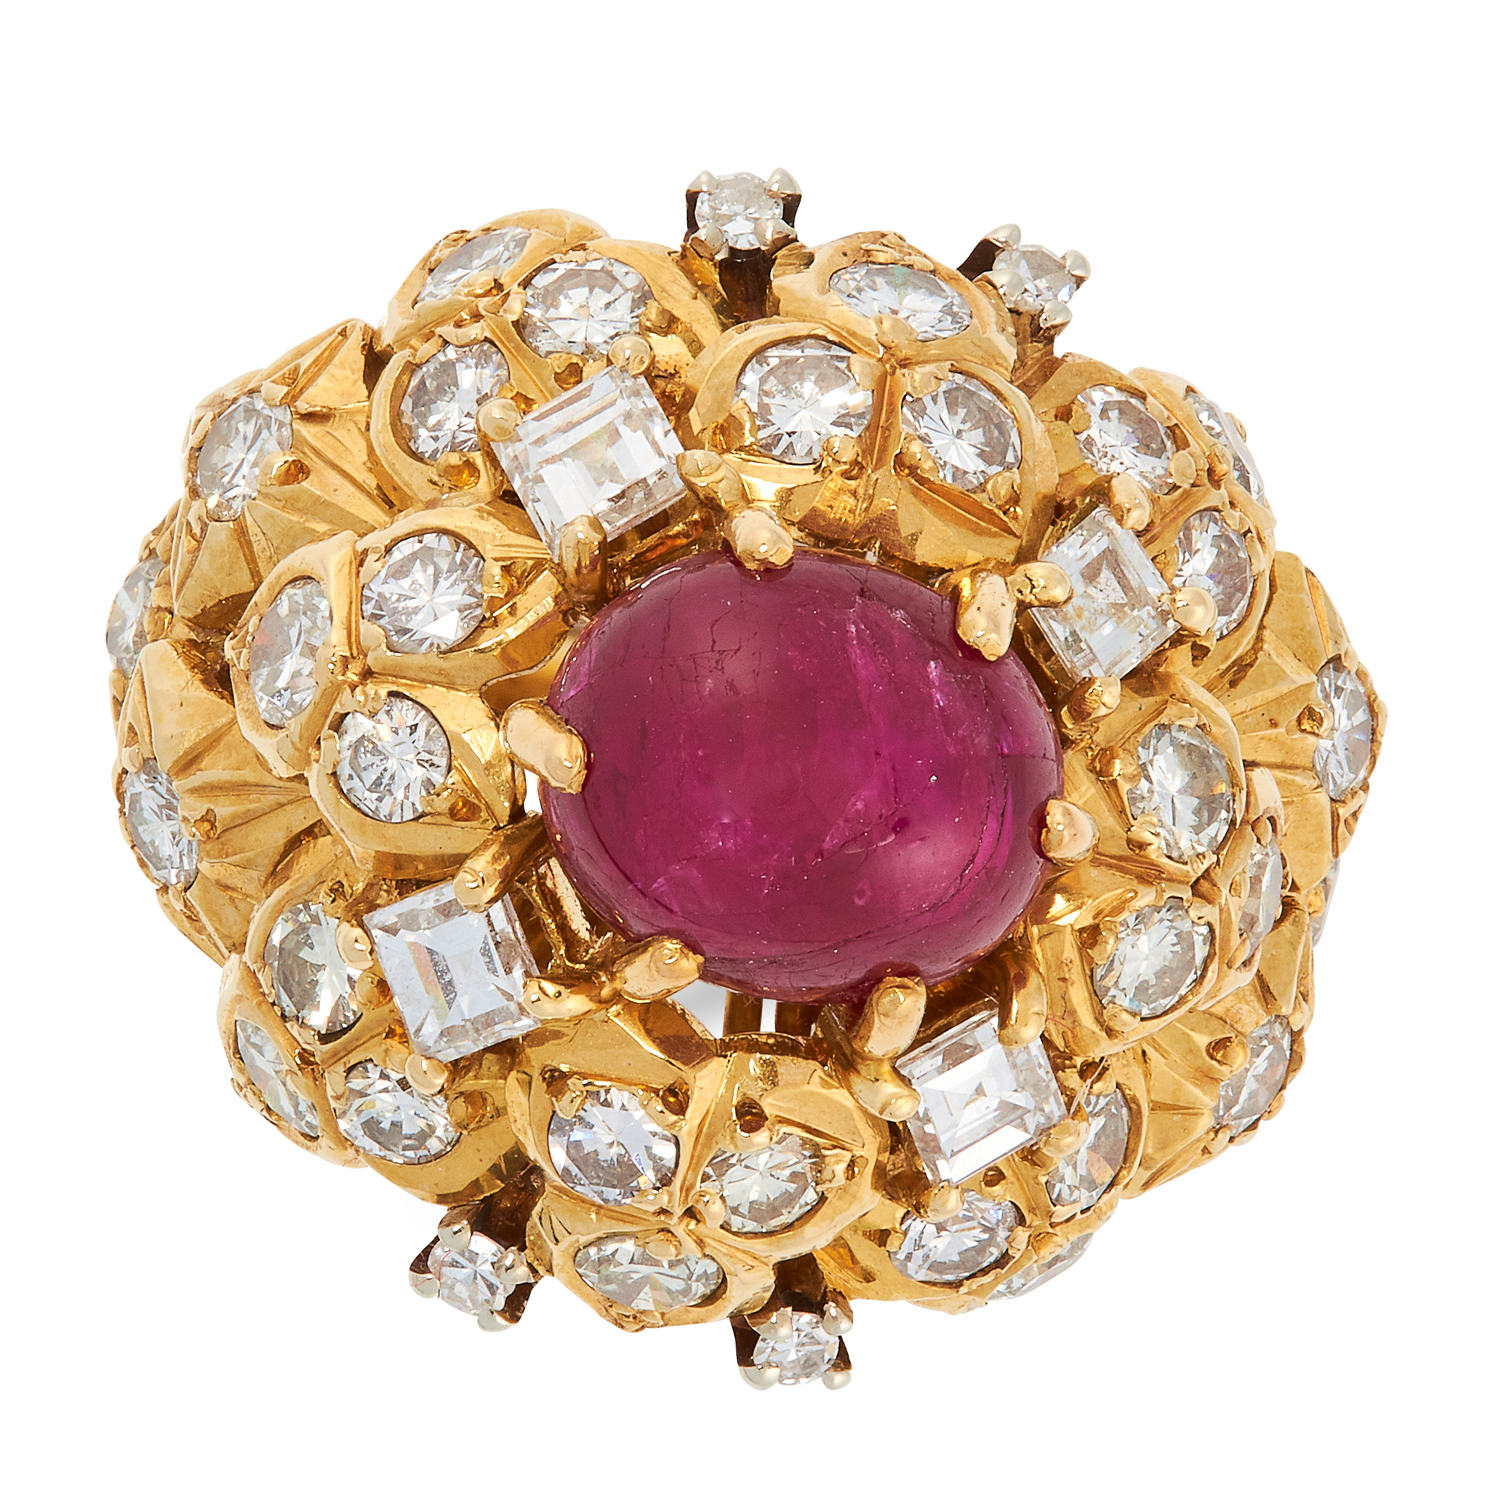 A VINTAGE RUBY AND DIAMOND RING, BEN ROSENFELD 1974 in 18ct yellow gold, set with an oval cabochon - Image 2 of 2